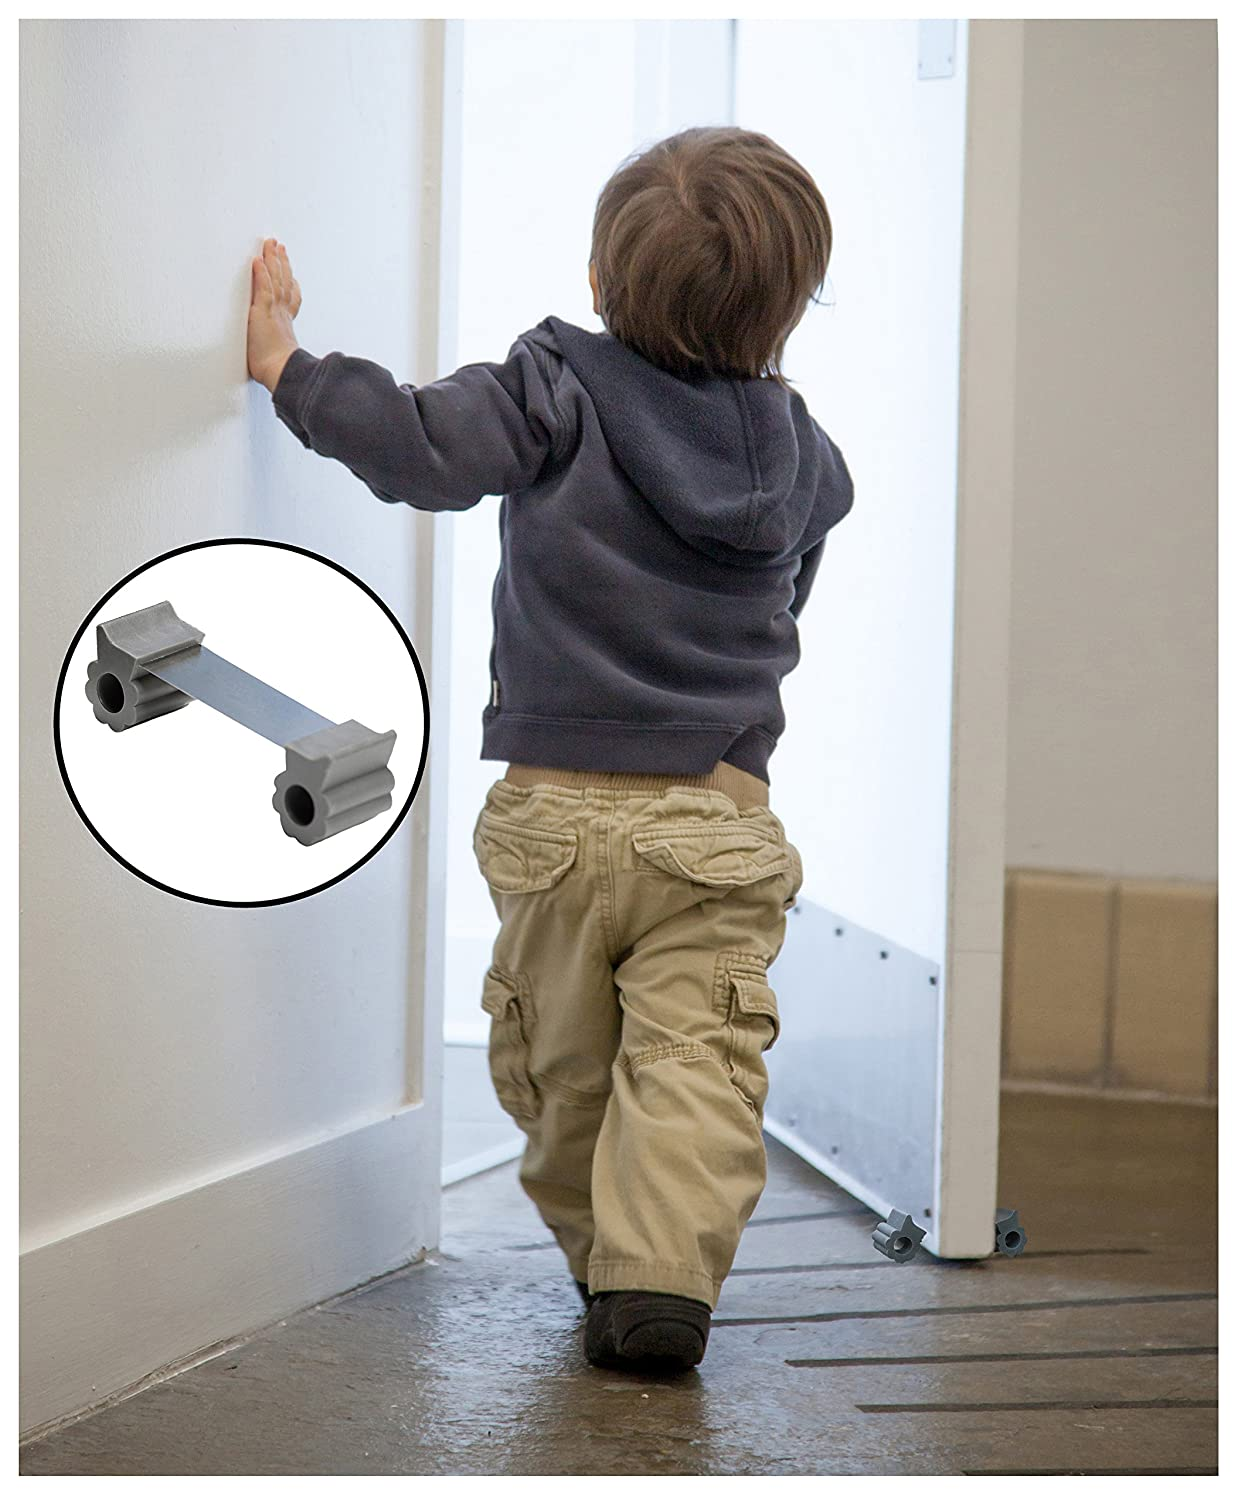 Amazon.com  GTP Door Stopper - Revolutionary New Design Stops Door Movement Forward And Backward - Holds Doors Securely In Place - 2 Highest Quality ... & Amazon.com : GTP Door Stopper - Revolutionary New Design Stops ... pezcame.com